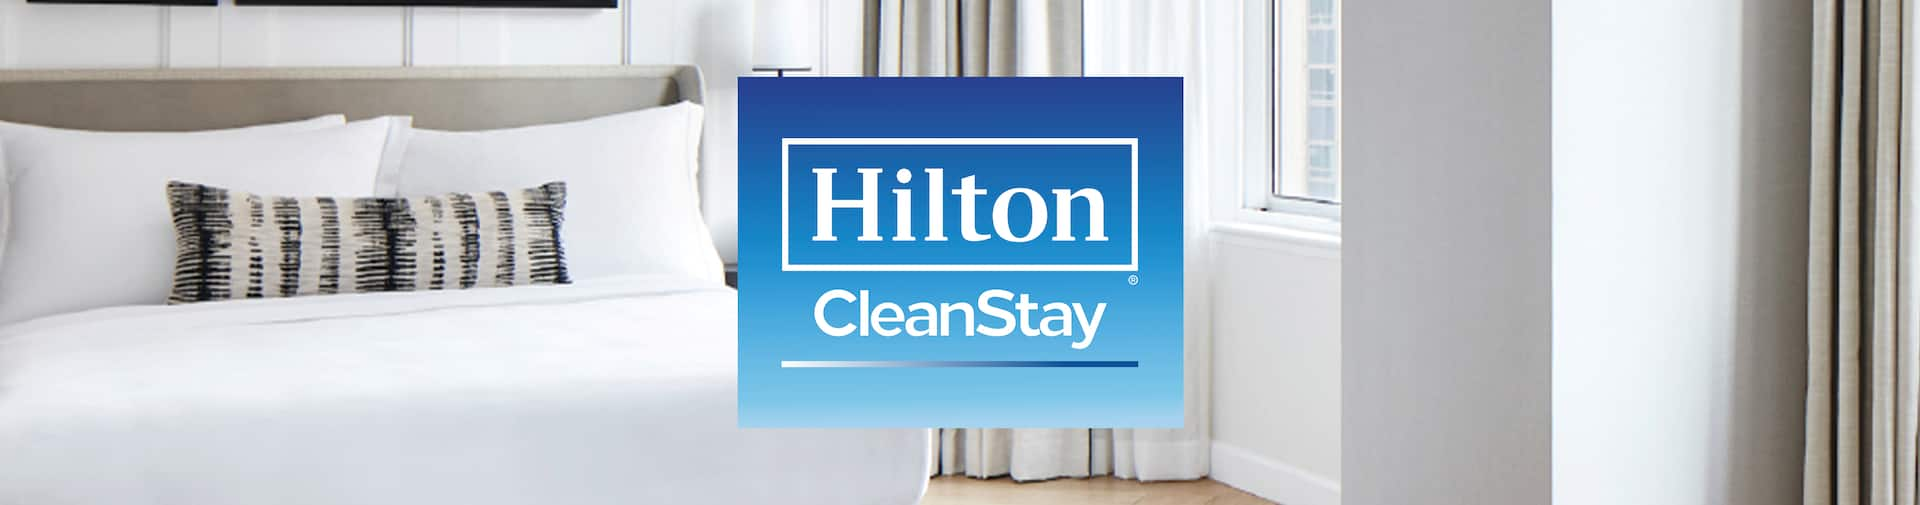 Hilton CleanStay logo over an image of a hotel bedroom